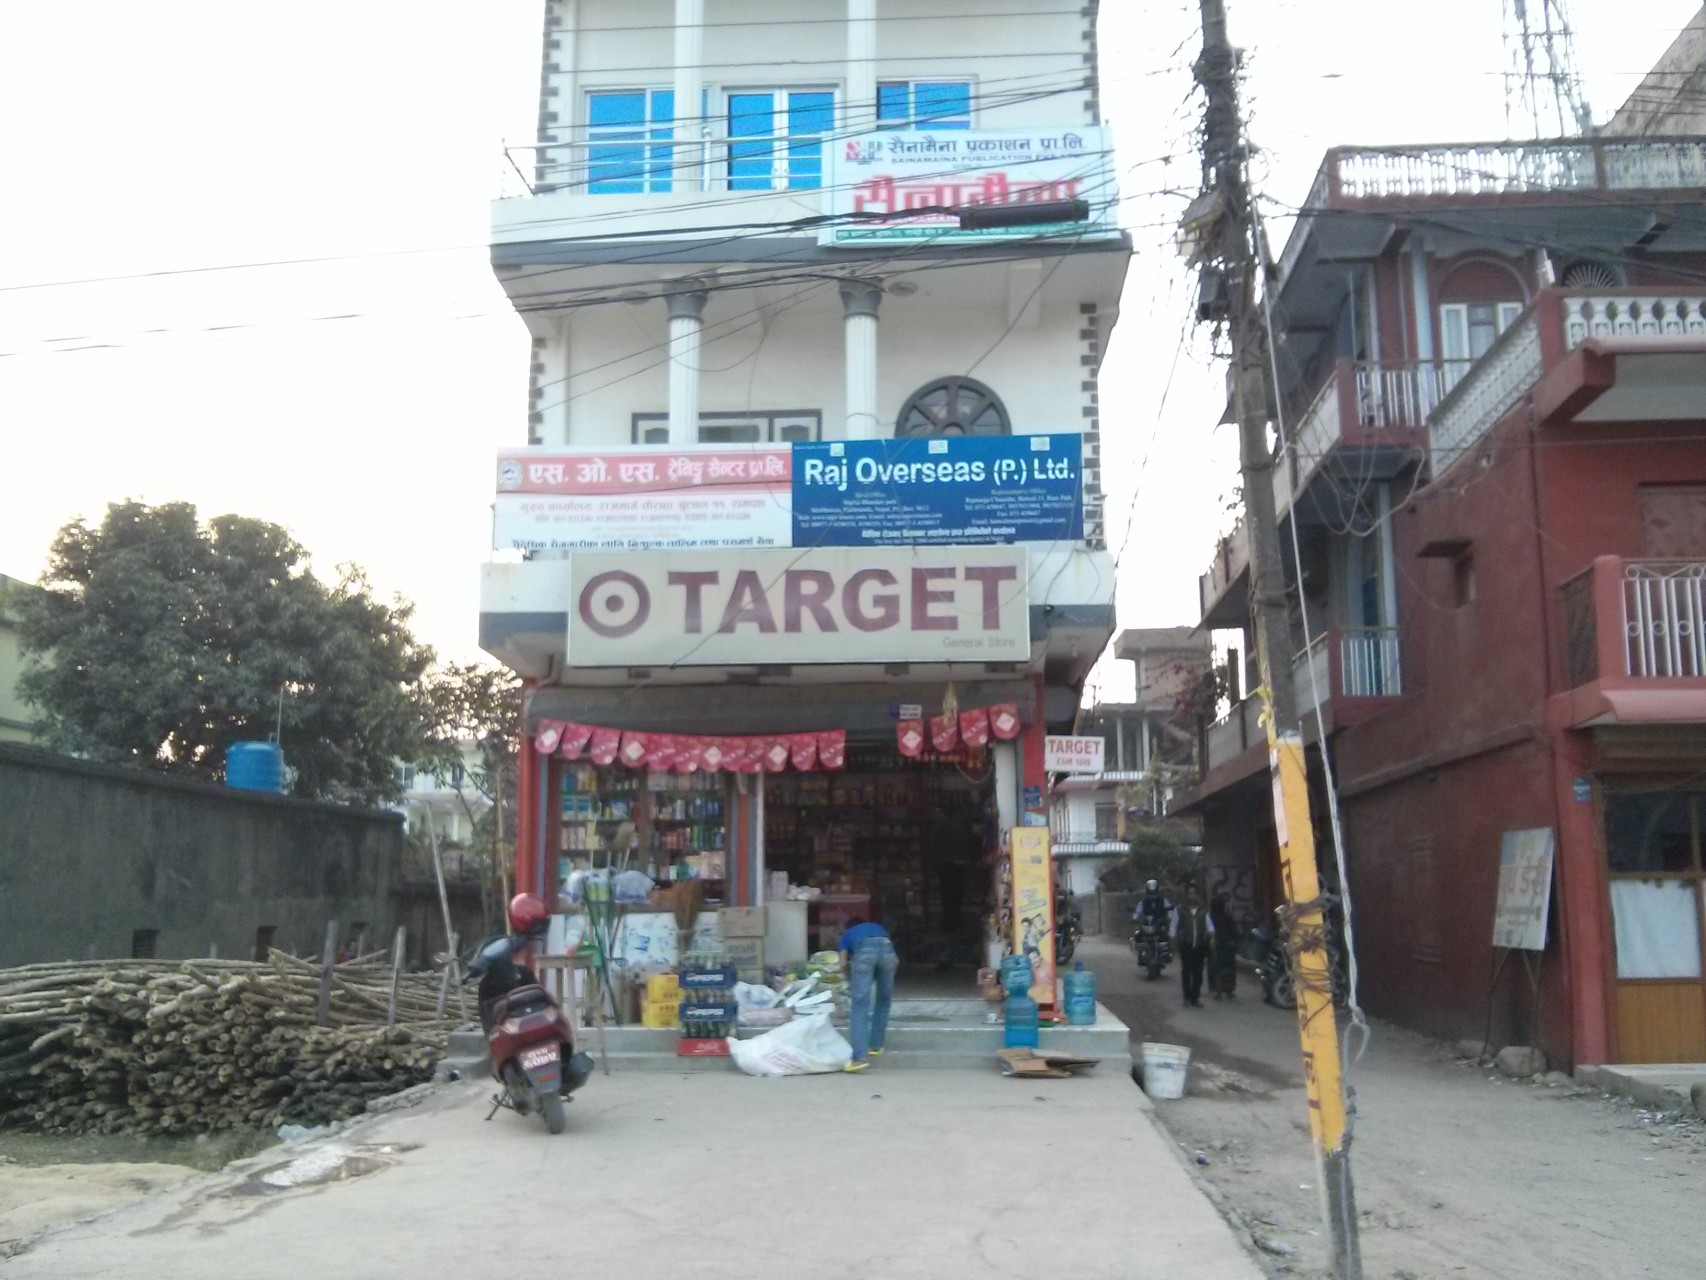 Target opened up a branch in Butwal!